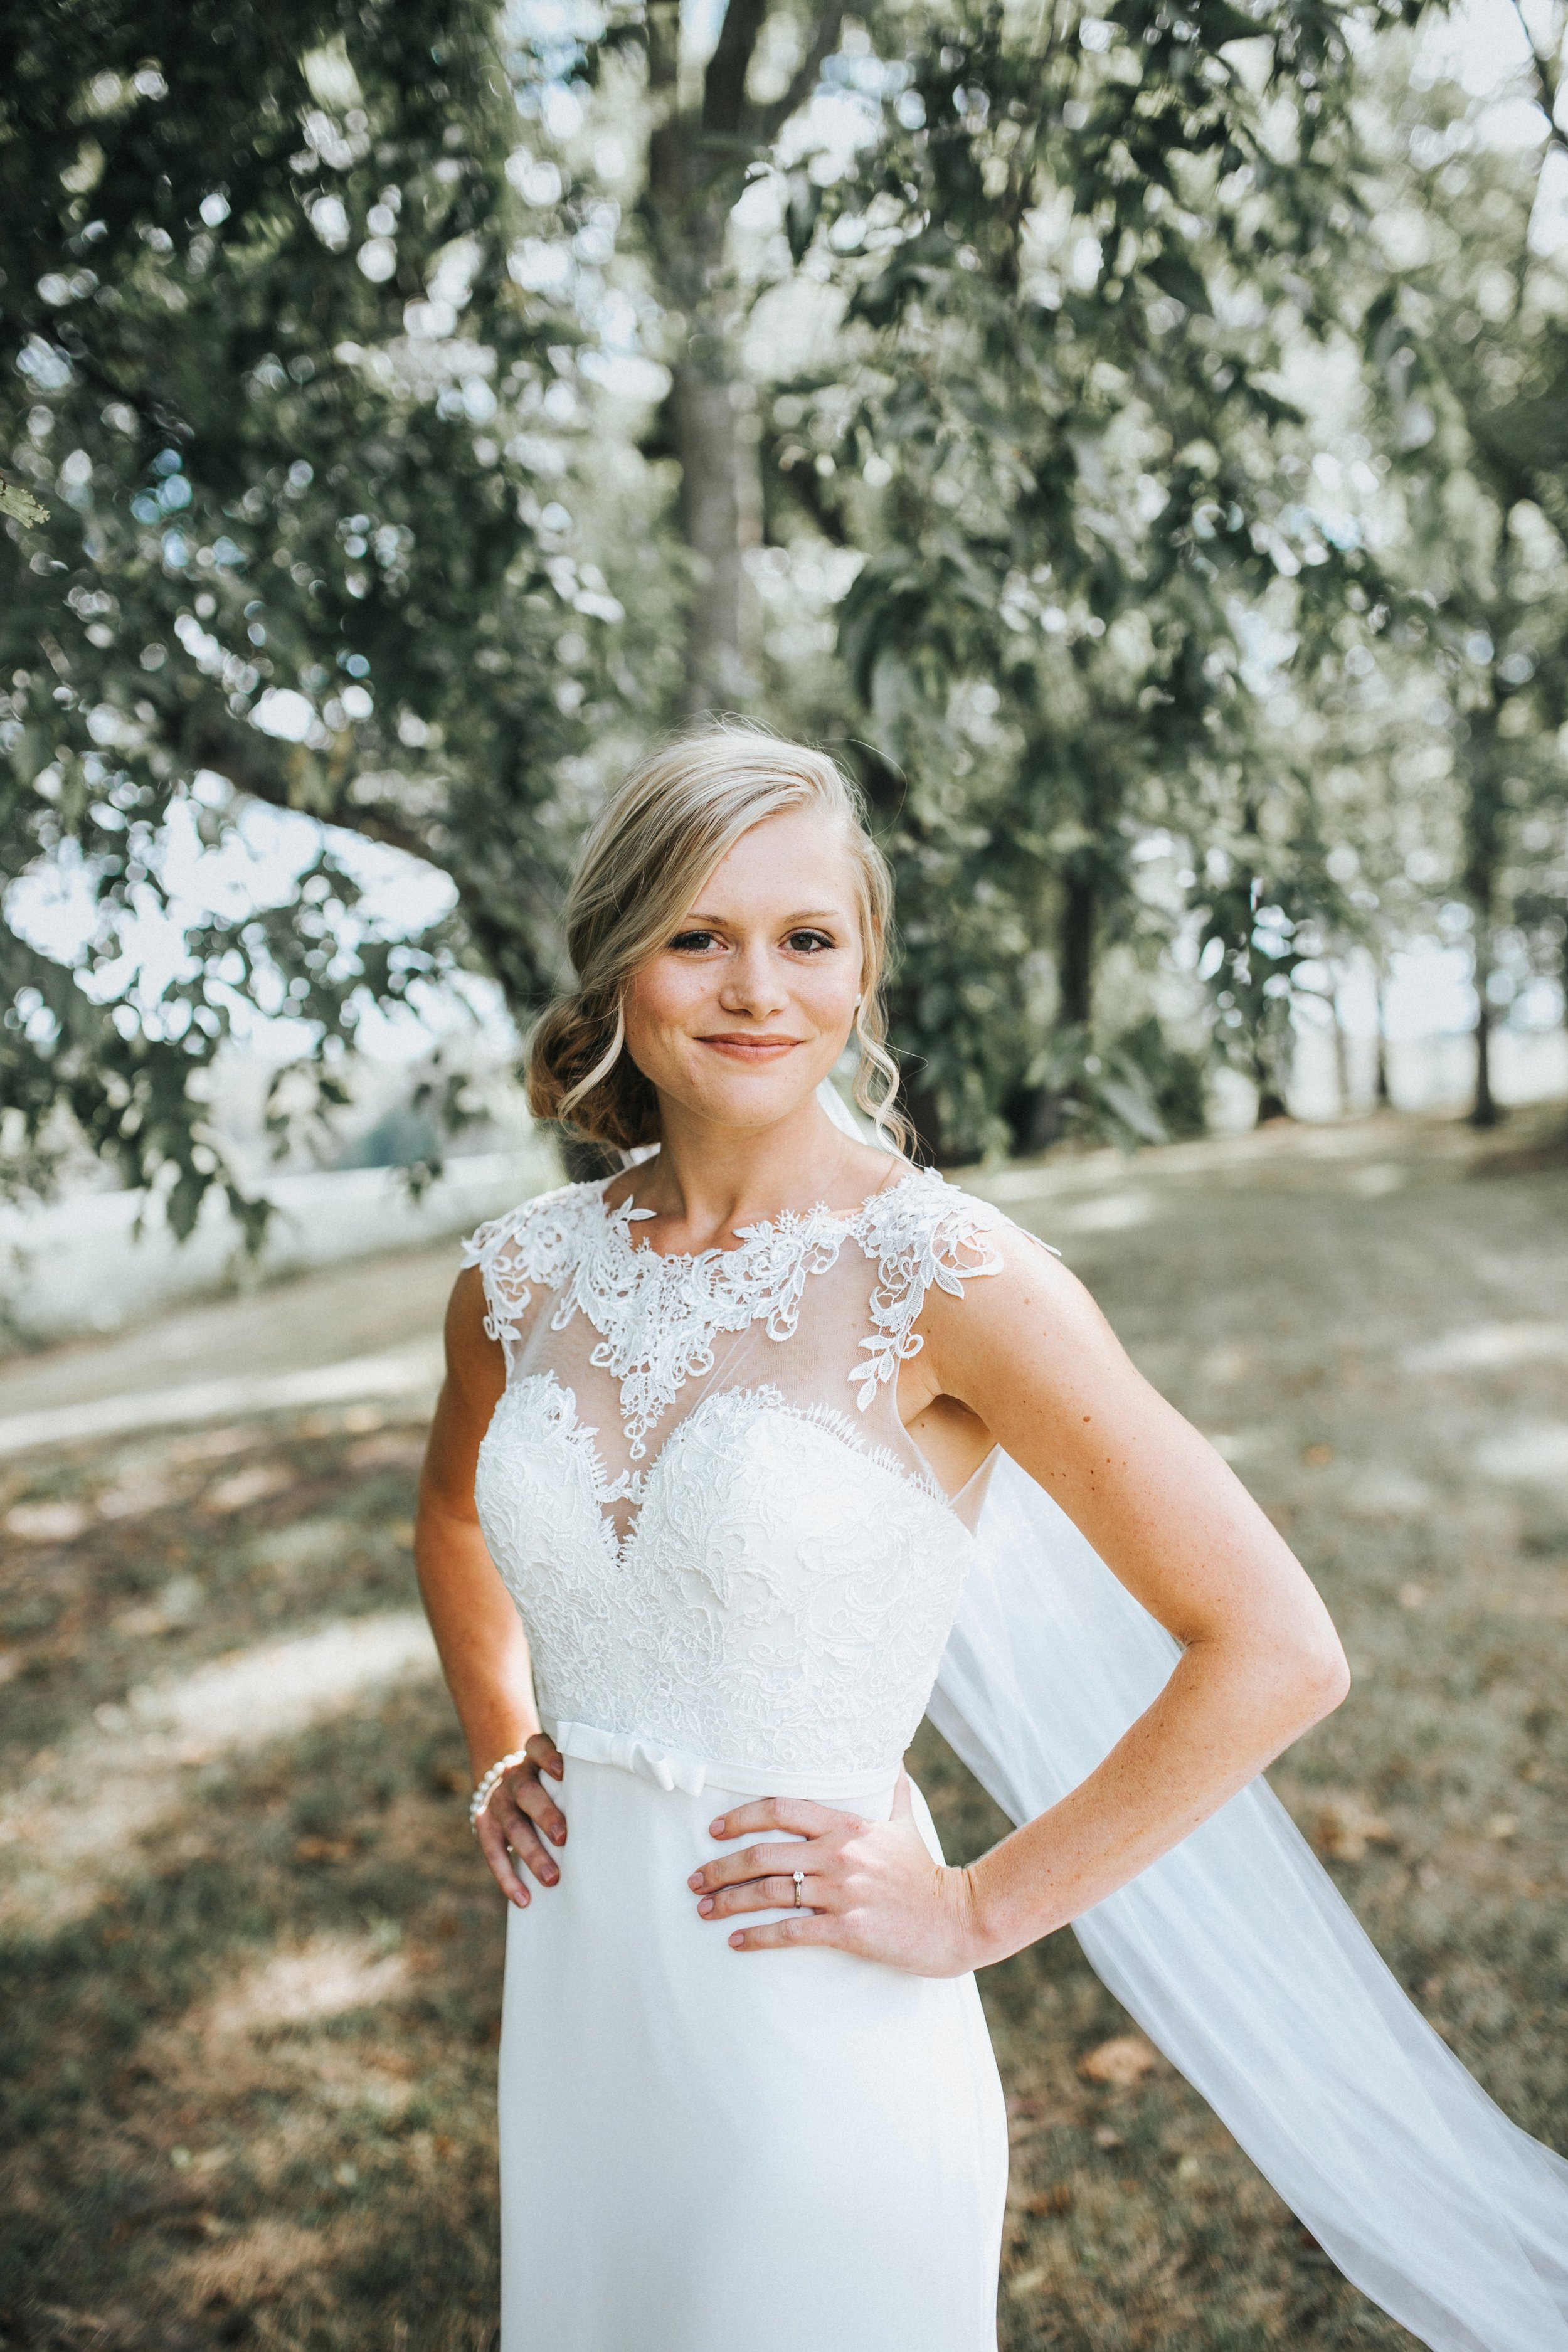 Virginia wedding photographer, Charlottesville wedding photographer, the hunt at Selma wedding, amelia virginia wedding photographer_0151.jpg